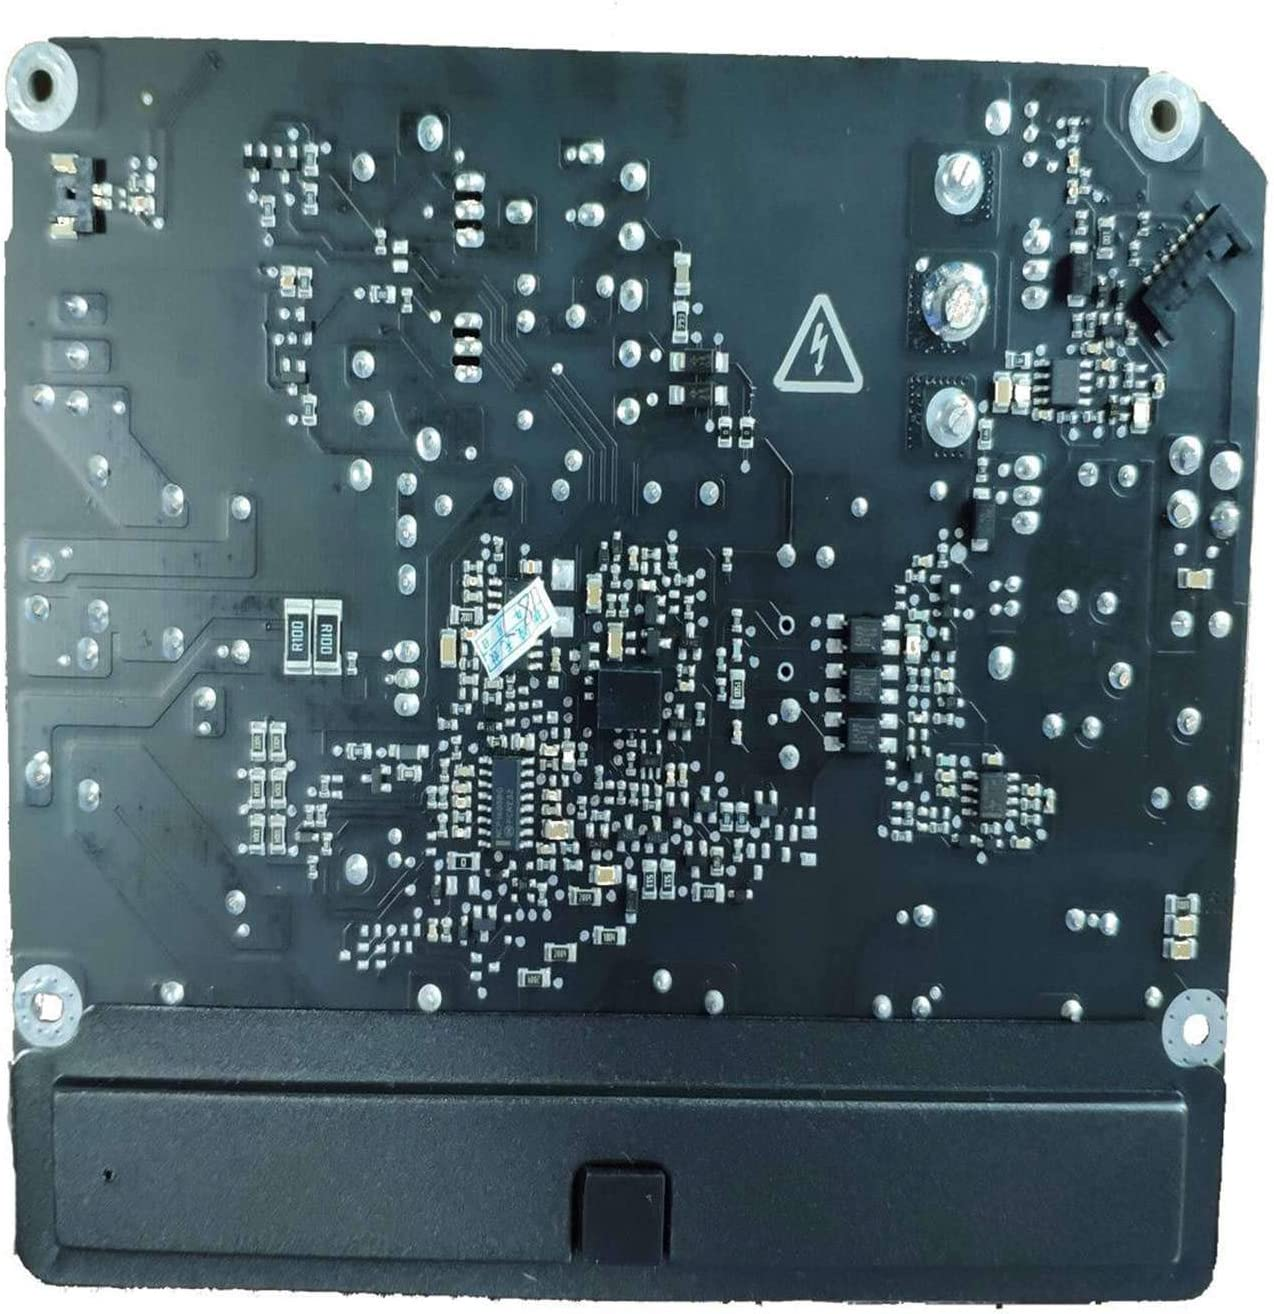 Cable Length: Other, Color: Black Cables OEM Power Board for Apple iMac 27 inch A1419 Power Supply Late 2012 to 2014 Pa-1311-2A1 Adp-300A Occus